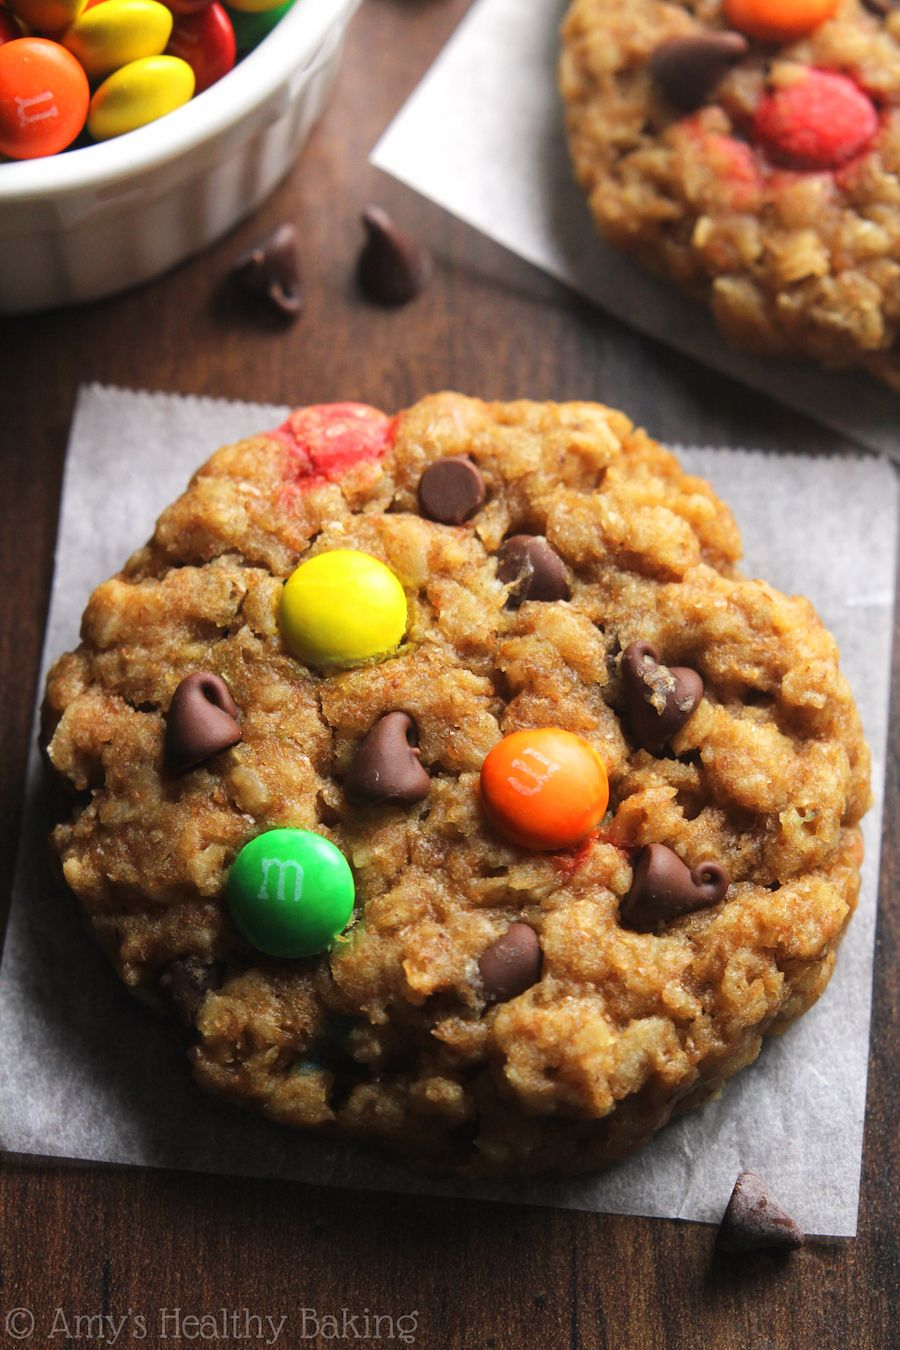 20 Easy Healthy Cookies Recipes For Low Calorie Cookies Delish Com